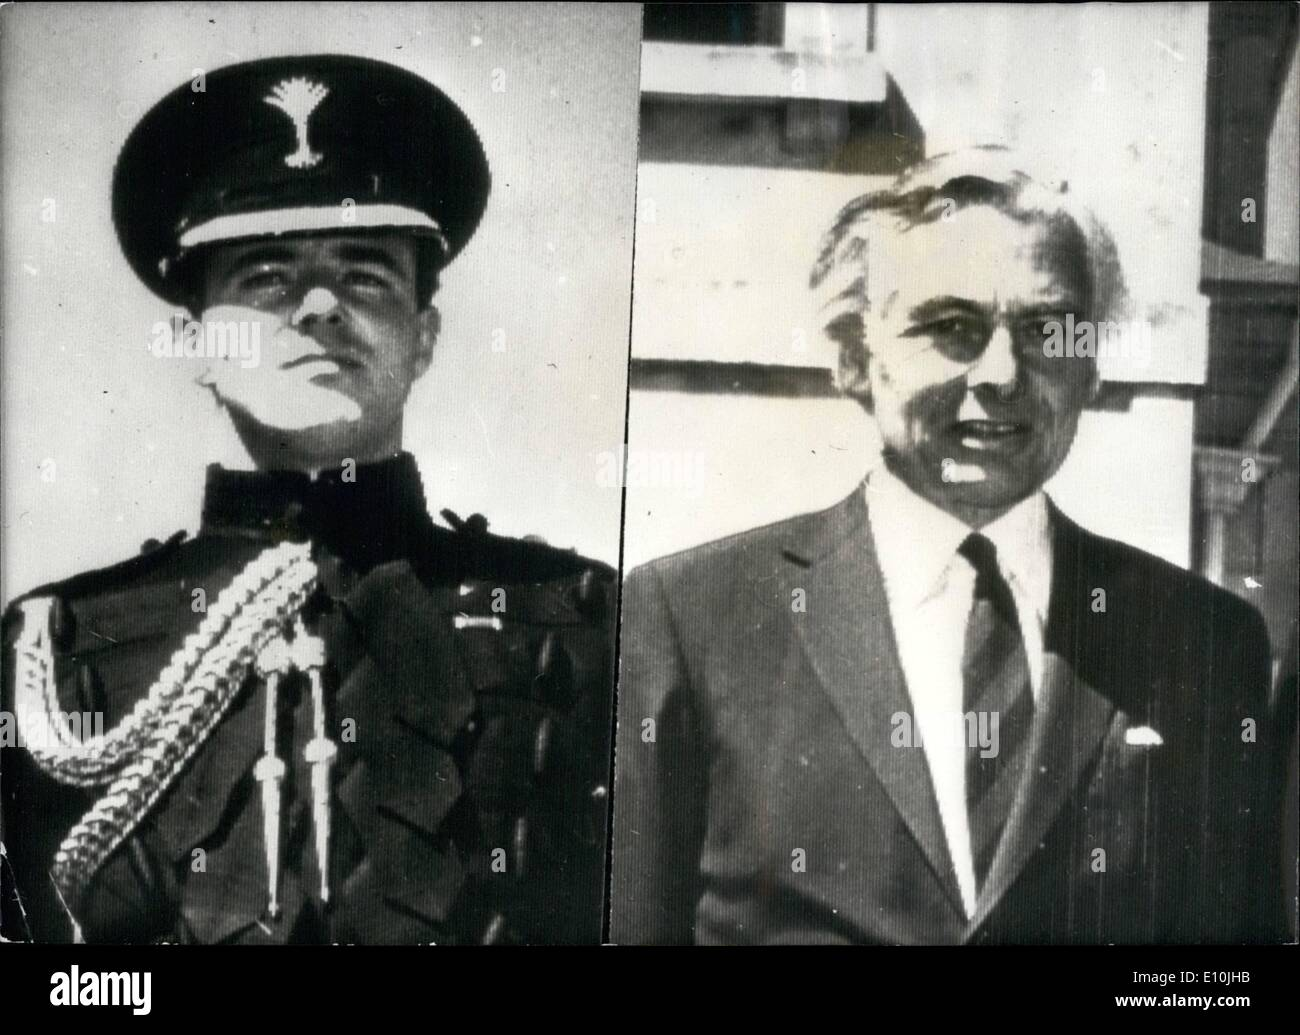 Mar. 03, 1973 - Bermuda Governor Shot: A State of Emergency was declared in Bermuda after the killing of the Governor, Sir Richard Sharples and his side-De-camp, Captain Hugh Sayers - both of whom were shot dead on Saturday as they strolled in the grounds of Government House. Picture Shows: Captain Hugh Sayers (left) and Sir Richard Sharples (right), pictured at Government House on the occasion of Receiving the commanding officer of the Norwegian destroyer H.N.M.S.Haakon VII which docked at Hamilton, Bermuda, on Friday. - Stock Image